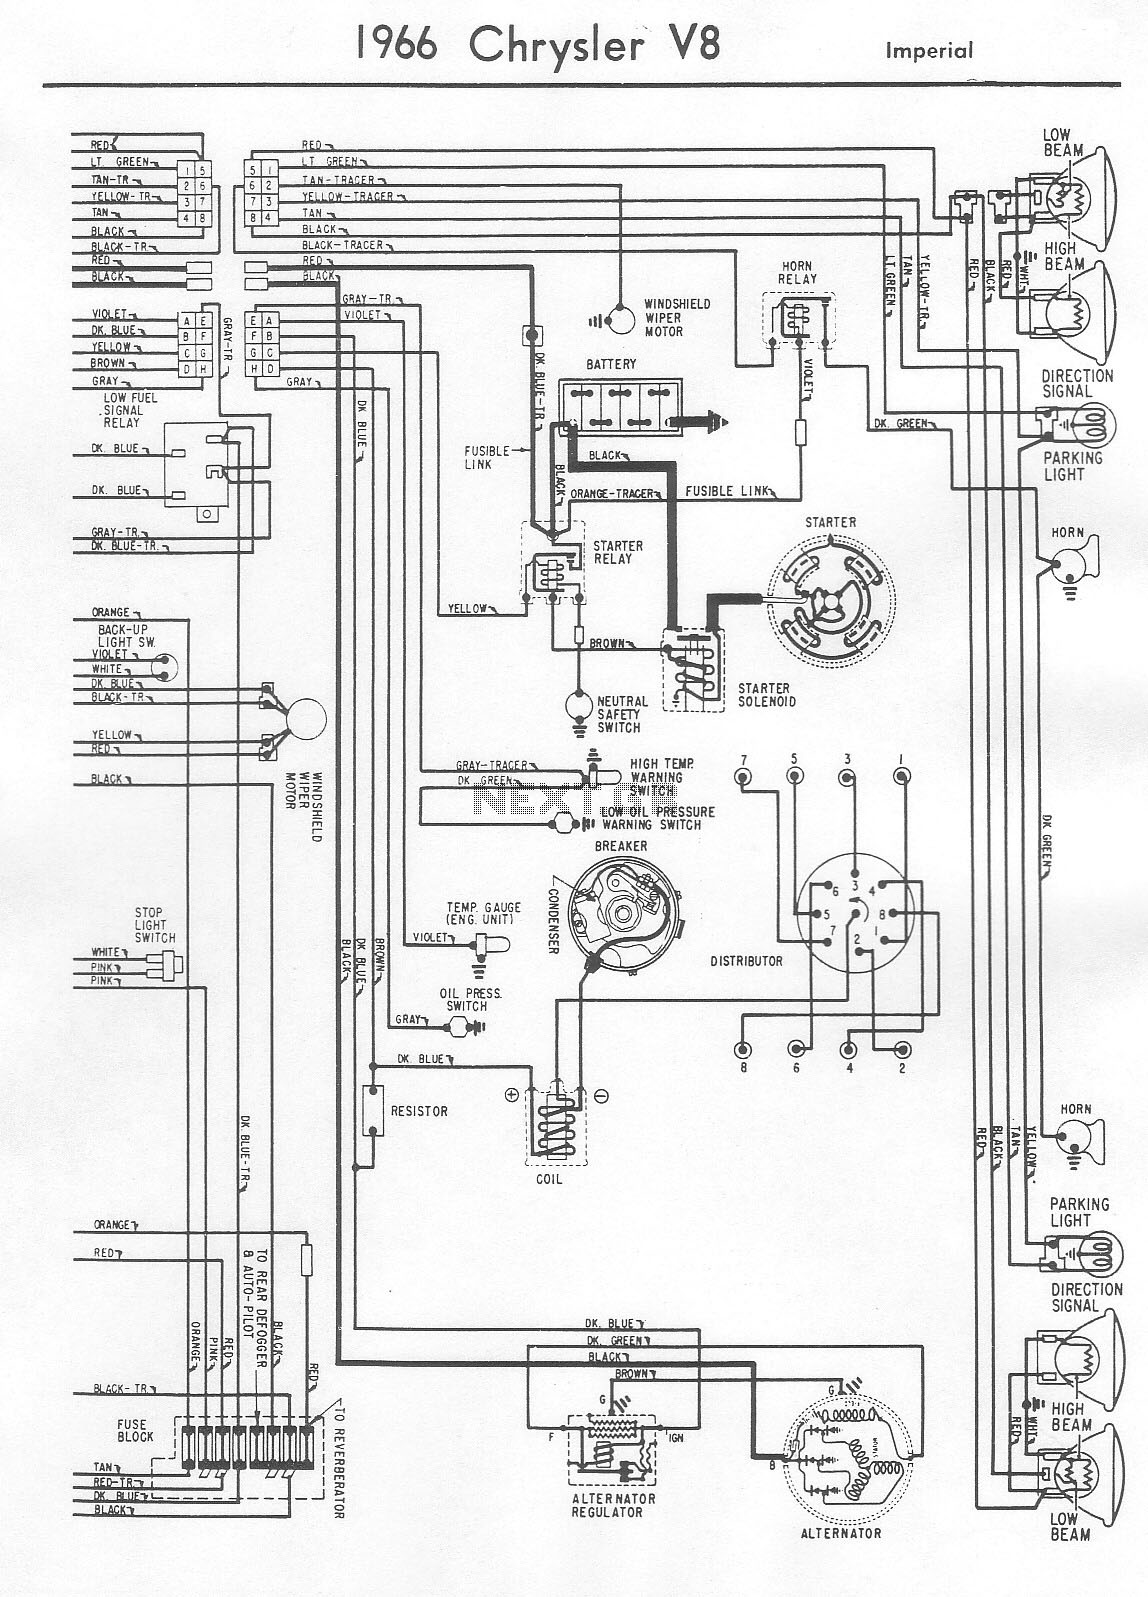 Dodge Slant Six Engine Ignition Wiring Diagram Library Circuits Gt Plc Circuit L31001 Nextgr 1966 Chrysler Opinions About U2022 Radio